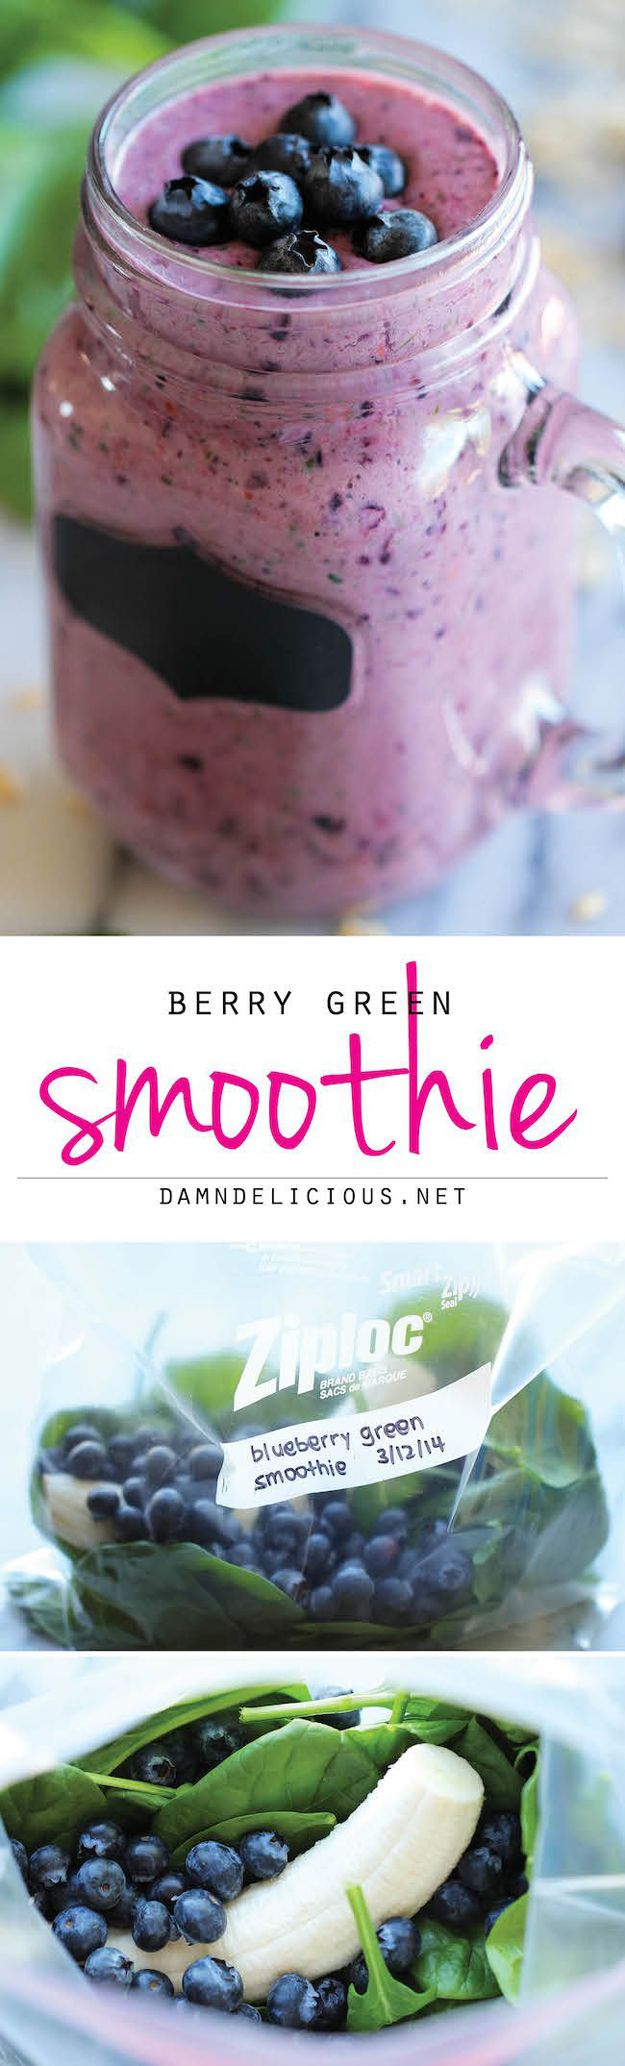 Berry Green Smoothie Recipe by DIY Ready at http://diyready.com/19-healthy-smoothies-that-do-the-body-good/